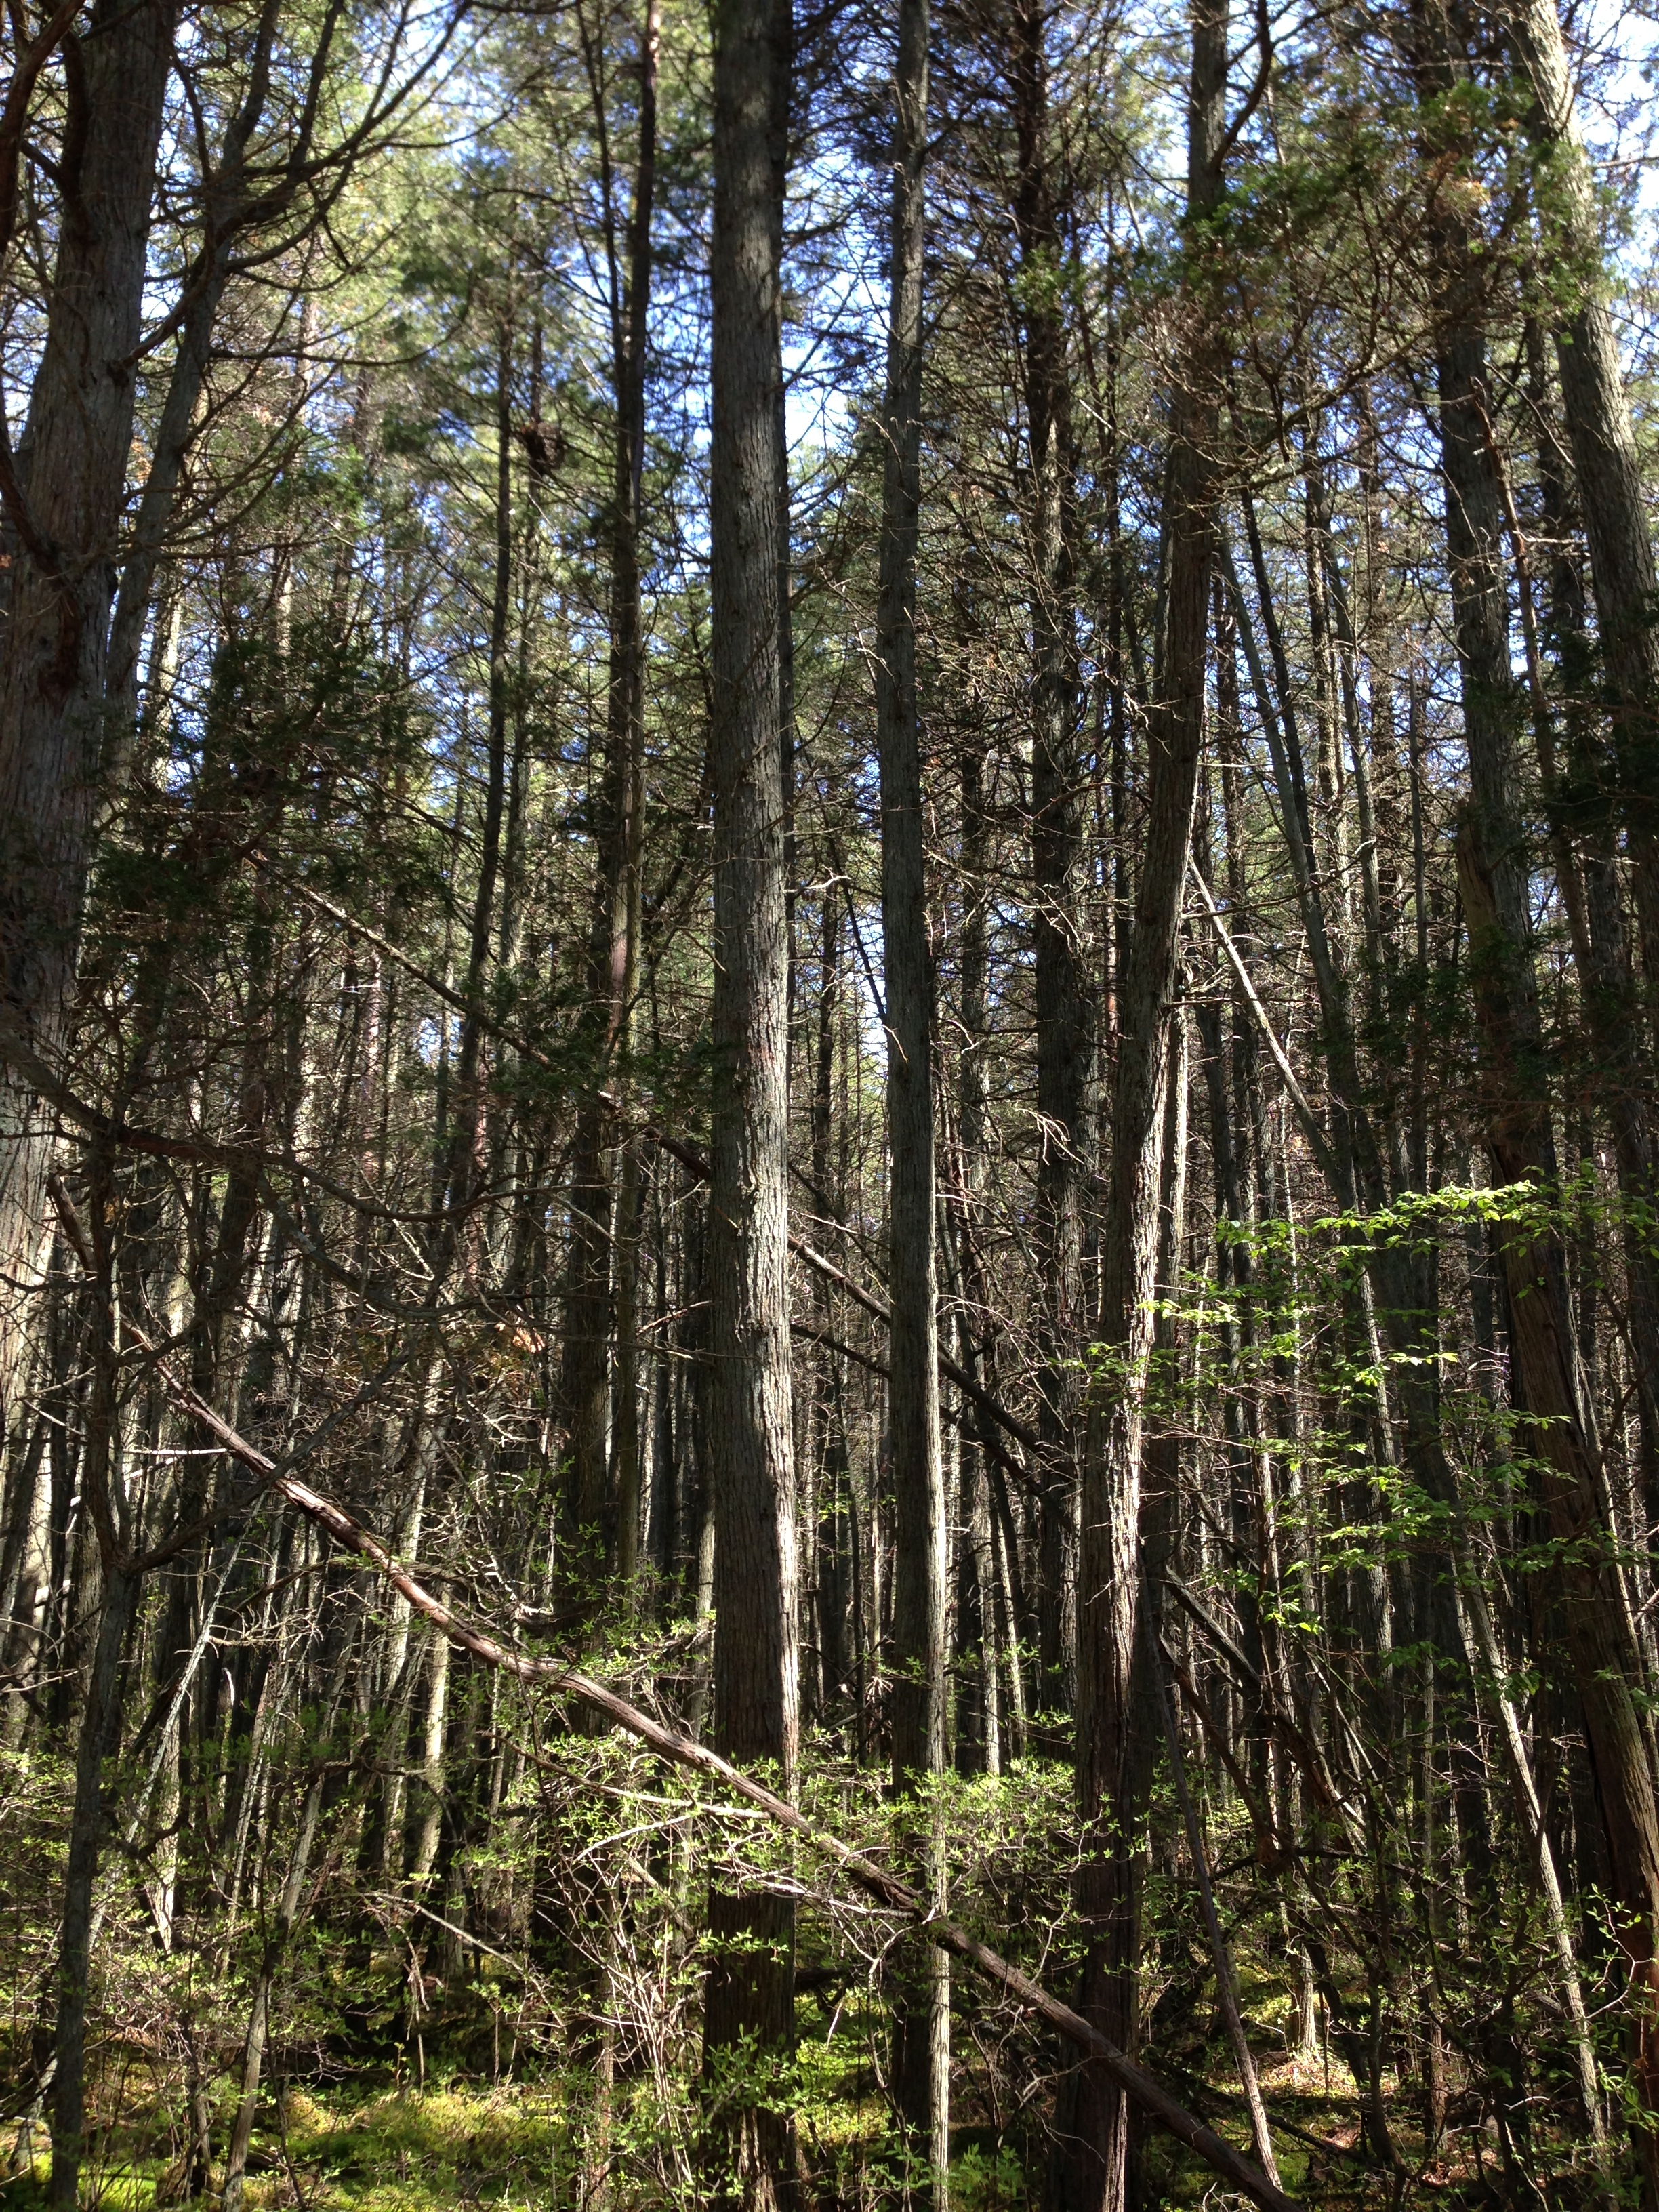 2013-05-10_11_04_57_A_dense_Atlantic_White_Cedar_swamp_along_the_Mount_Misery_Trail_in_Brendan_T_Byrne_State_Forest_in_New_Jersey.jpg